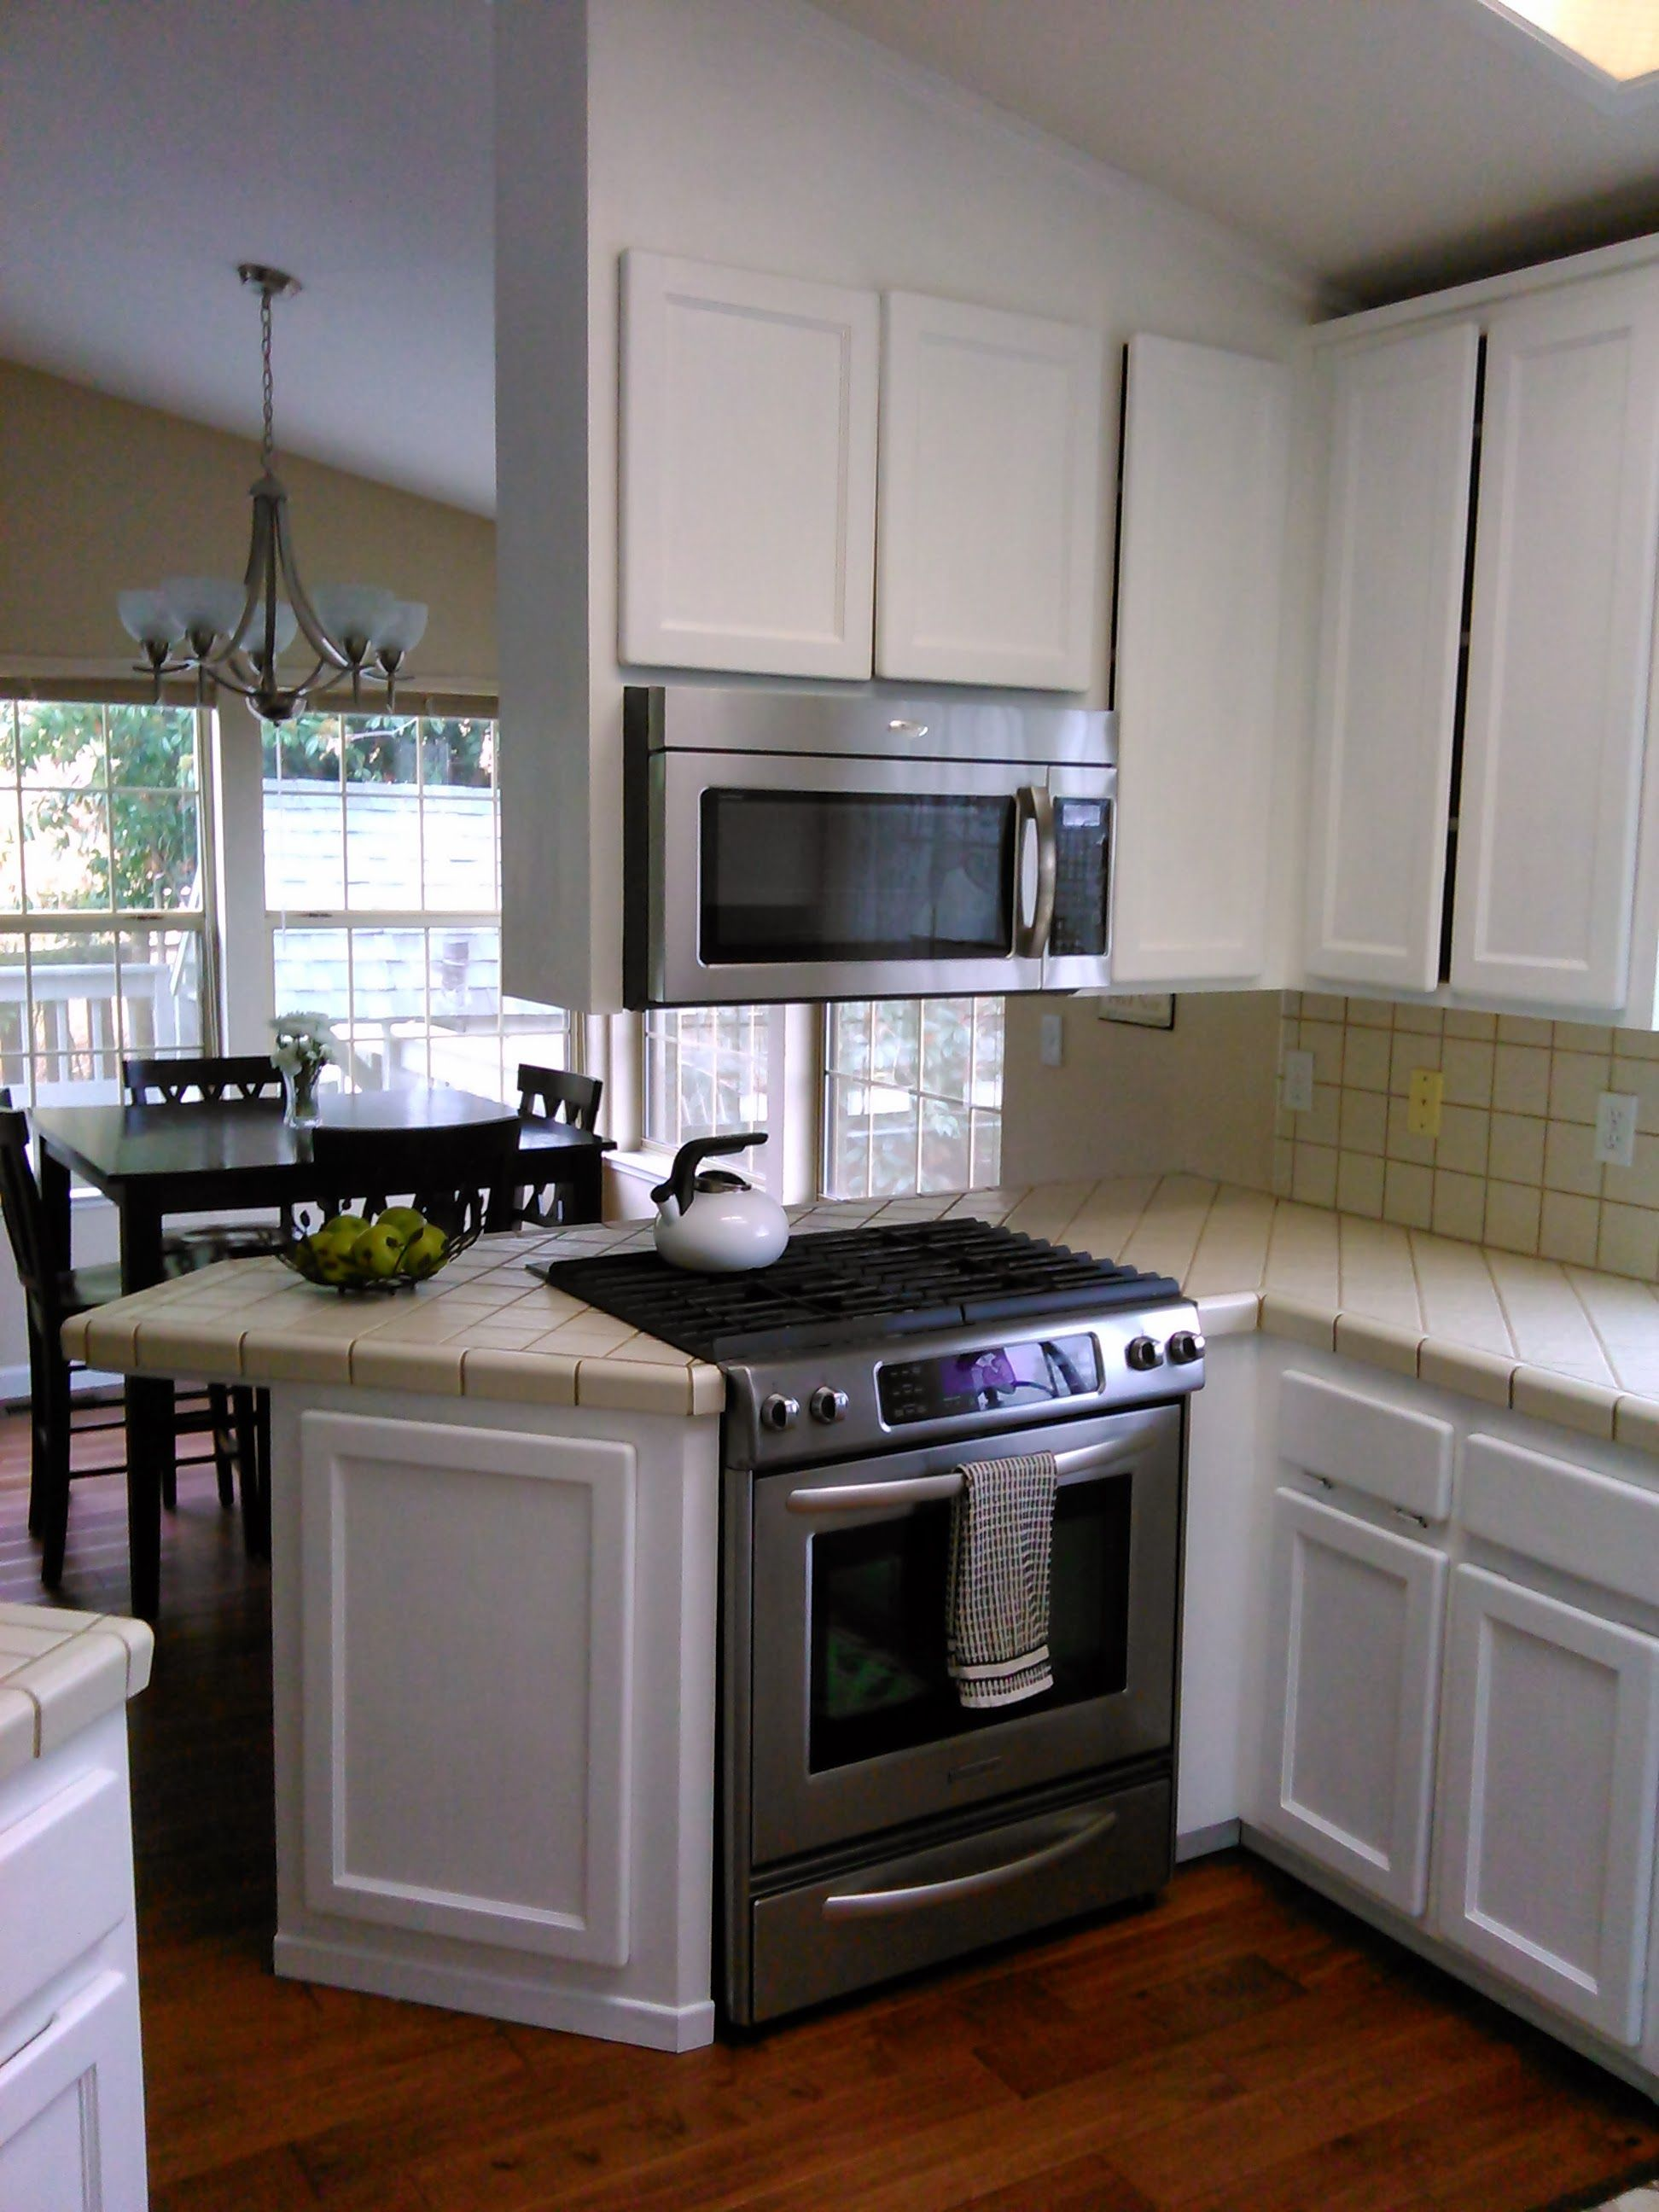 Oak Cabinets Painted White With Km Epoxy Paint Kitchen Aid Convection Slide In Range And 400cfm Microwave Convection C Painting Cabinets Kitchen Oak Cabinets